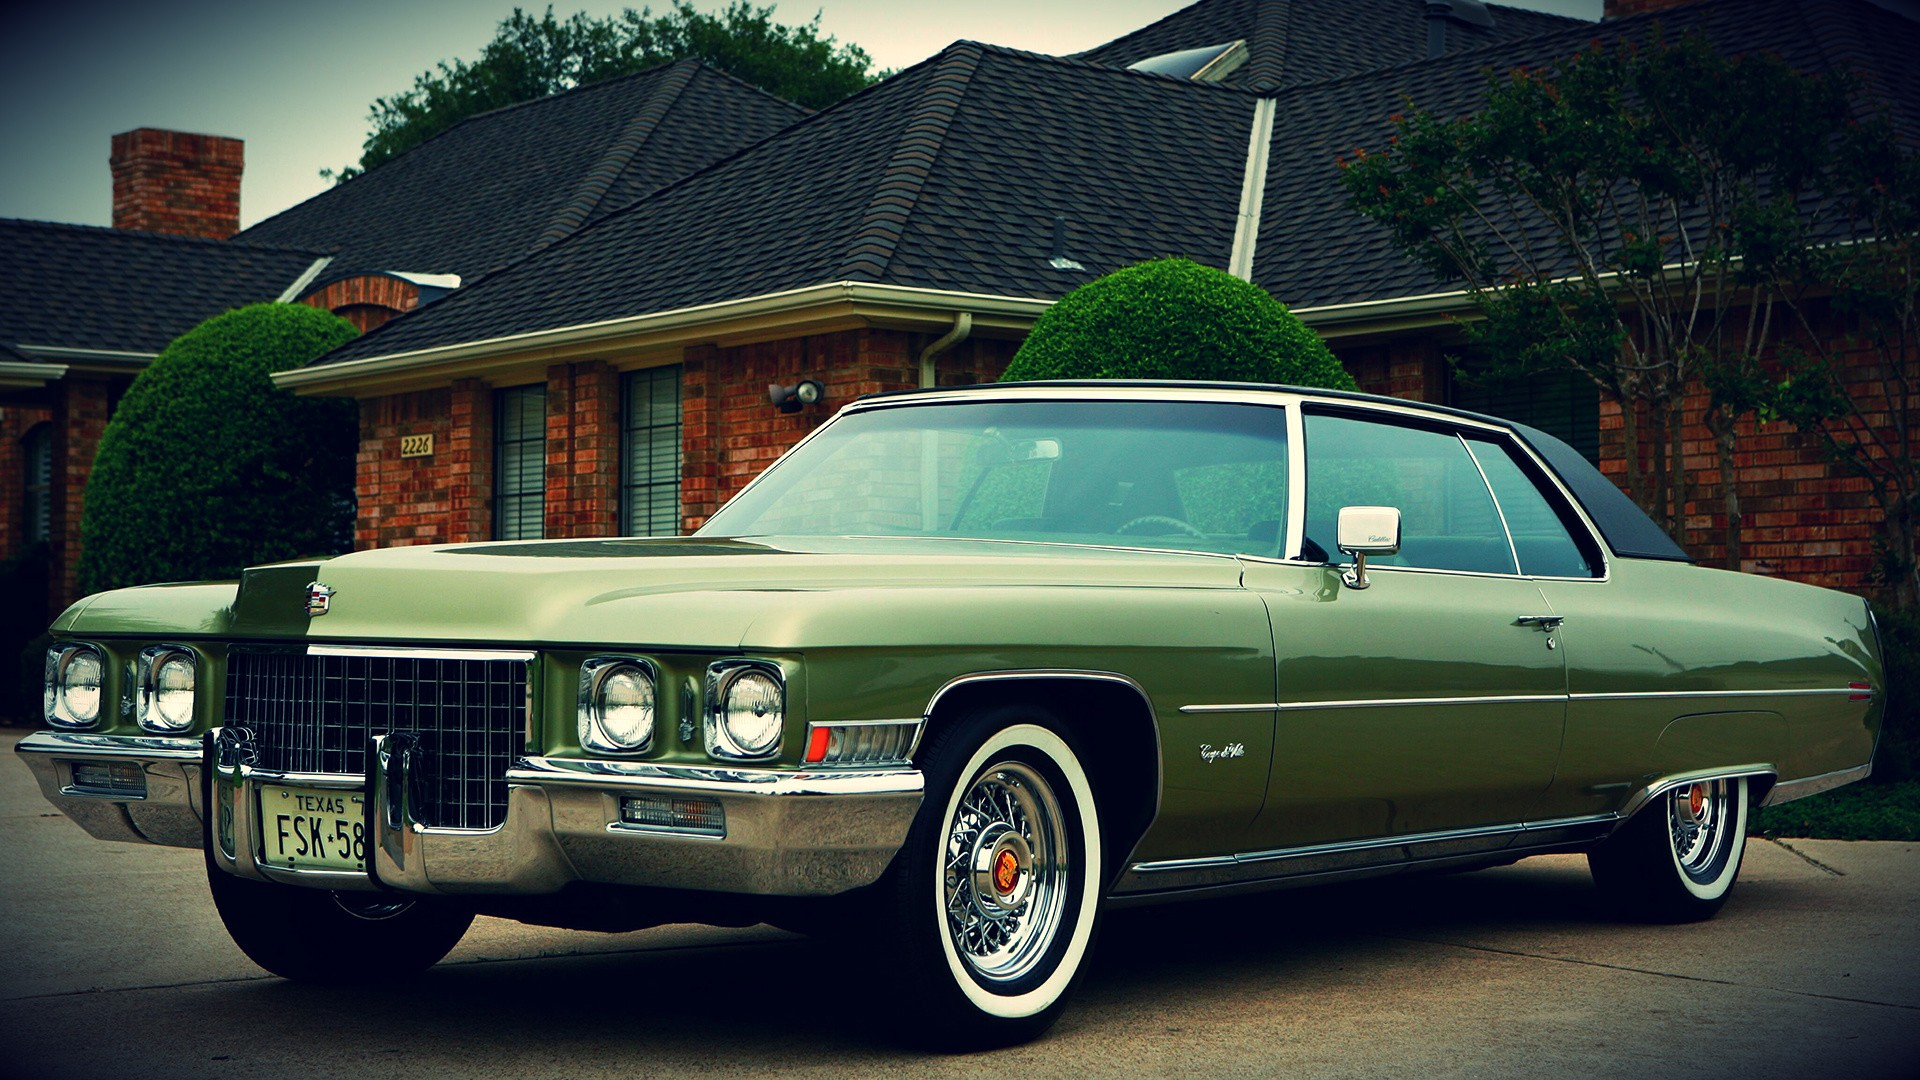 1 1971 Cadillac Coupe Deville HD Wallpapers | Backgrounds ...